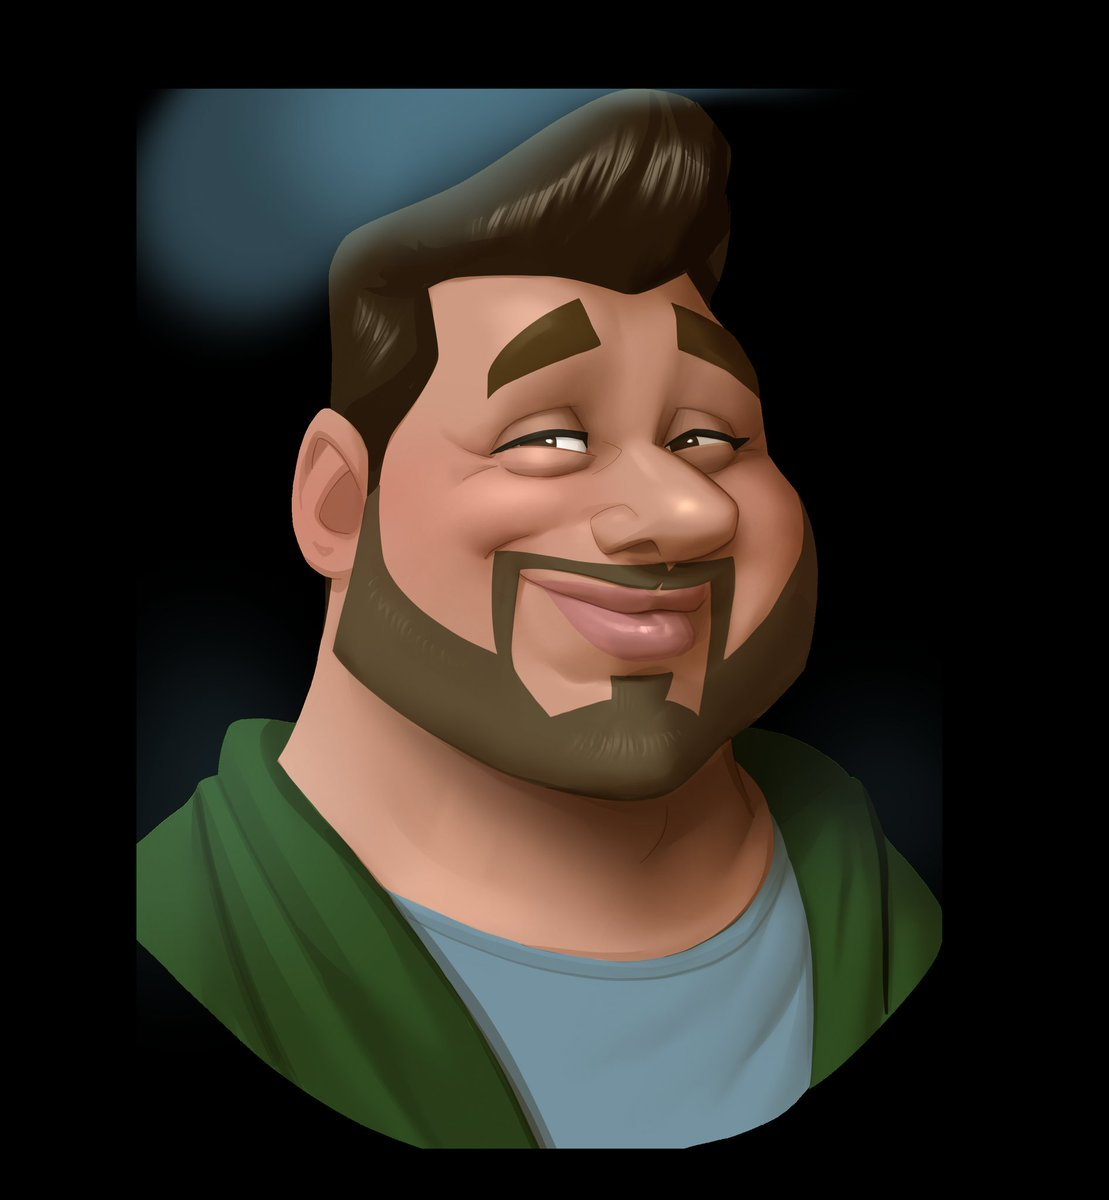 📬You've got mail!  Confidential: New Hire.  Name: Hassan Profile: Delivered later today Image: Attached  Wishlist #BusinessHeroes:   #gameart #gamedev #IndieGameDev #employee #indiegame #indie #indiedev #startup #Employment #entrepreneurs #tuesdayvibe